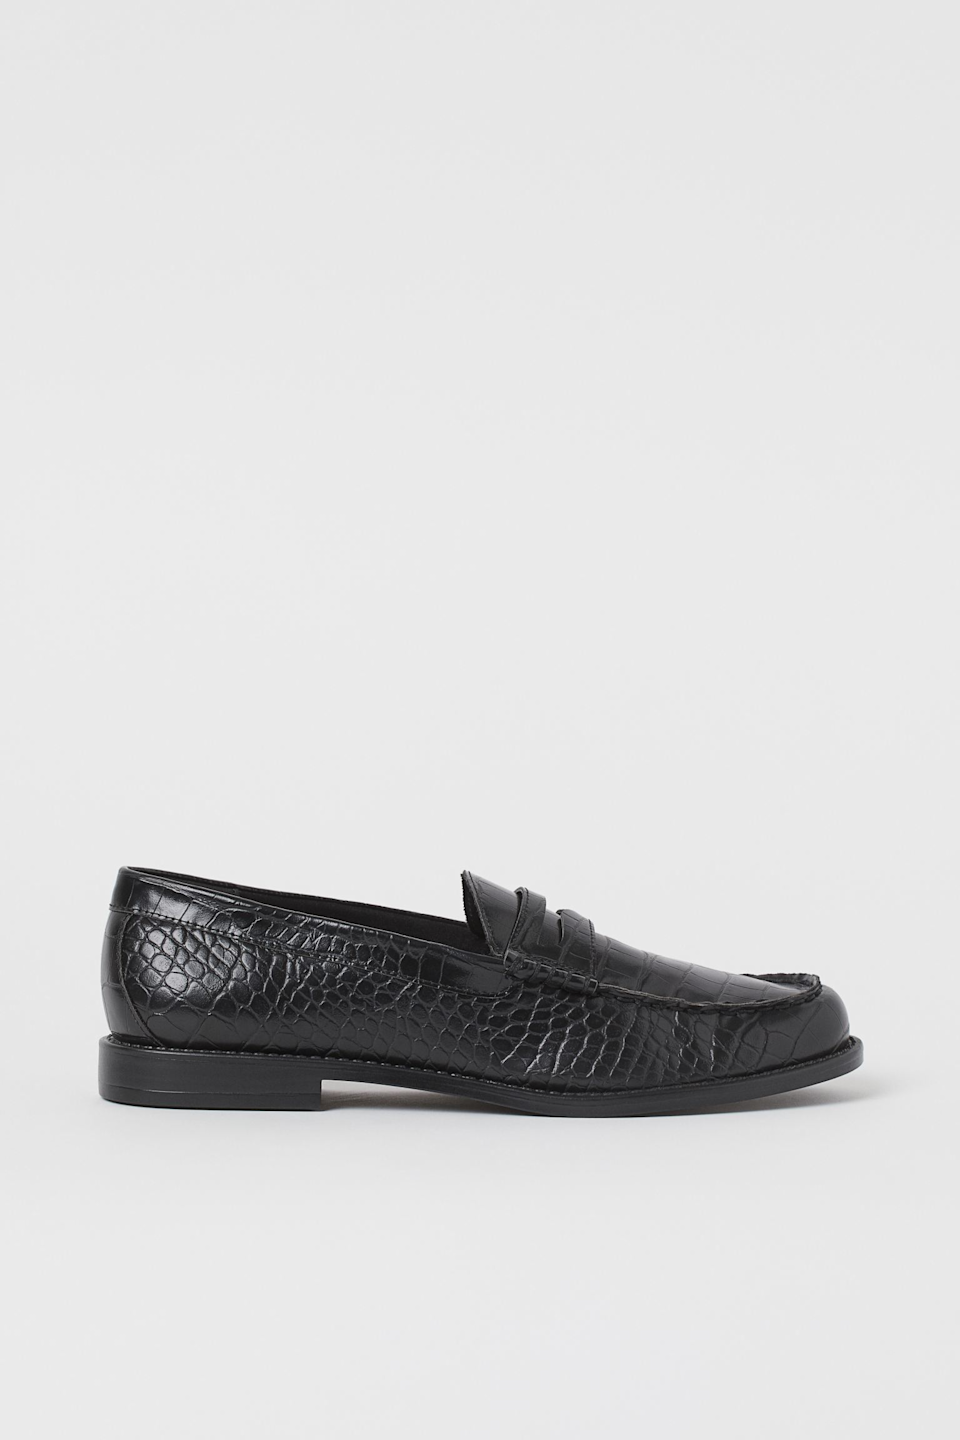 "<br><br><strong>H&M</strong> Loafers, $, available at <a href=""https://go.skimresources.com/?id=30283X879131&url=https%3A%2F%2Fwww2.hm.com%2Fen_us%2Fproductpage.0893562001.html"" rel=""nofollow noopener"" target=""_blank"" data-ylk=""slk:H&M"" class=""link rapid-noclick-resp"">H&M</a>"